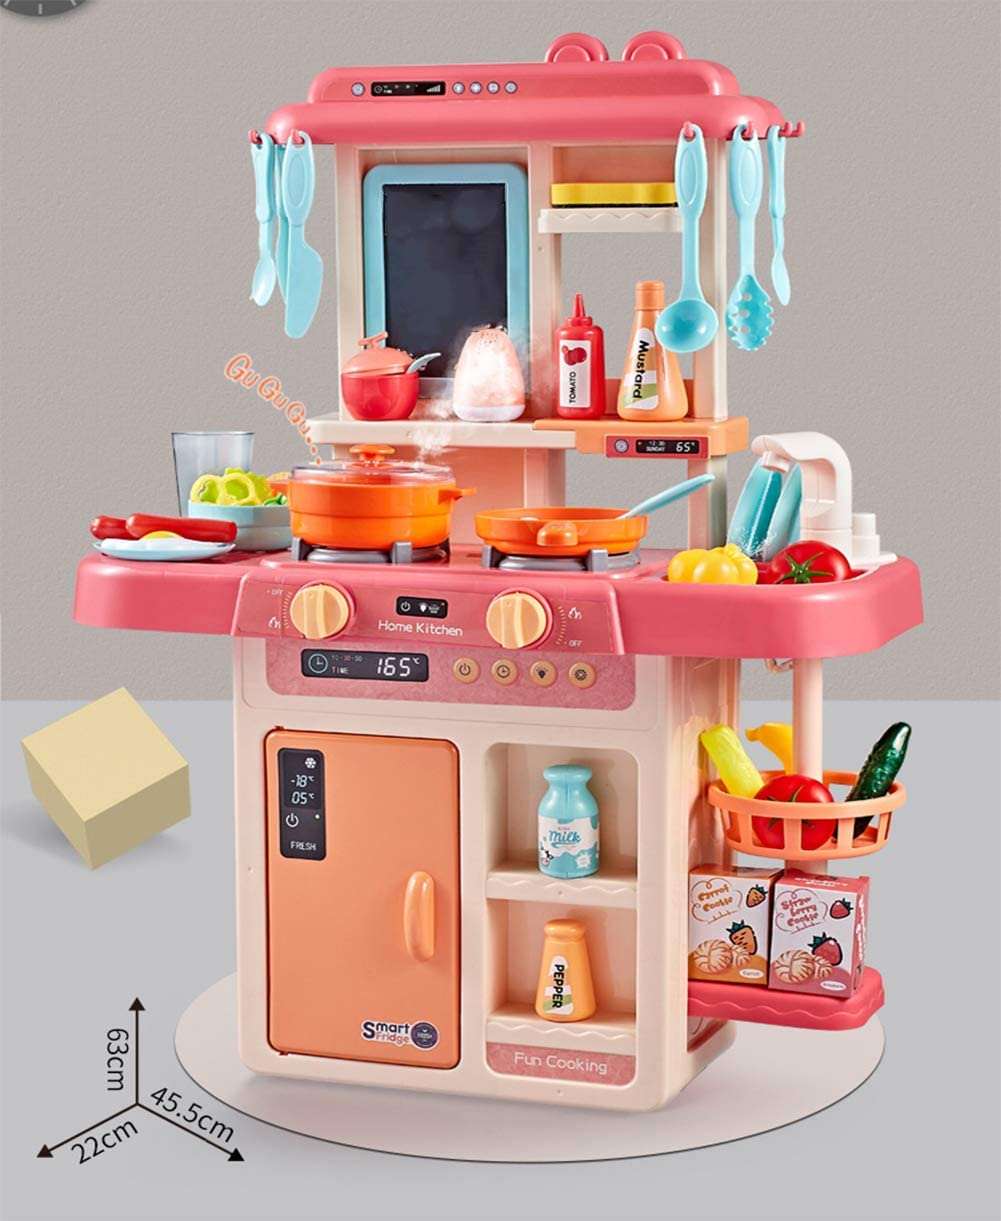 36PCS Kids Kitchen Playsets Little Tykes with Lights and Sounds for Boys Girls, Play Kitchen Set Kidkraft Large Toys Tableware Dishes Good Gift for Children, Including Cooking Sound, Vegetables, Food